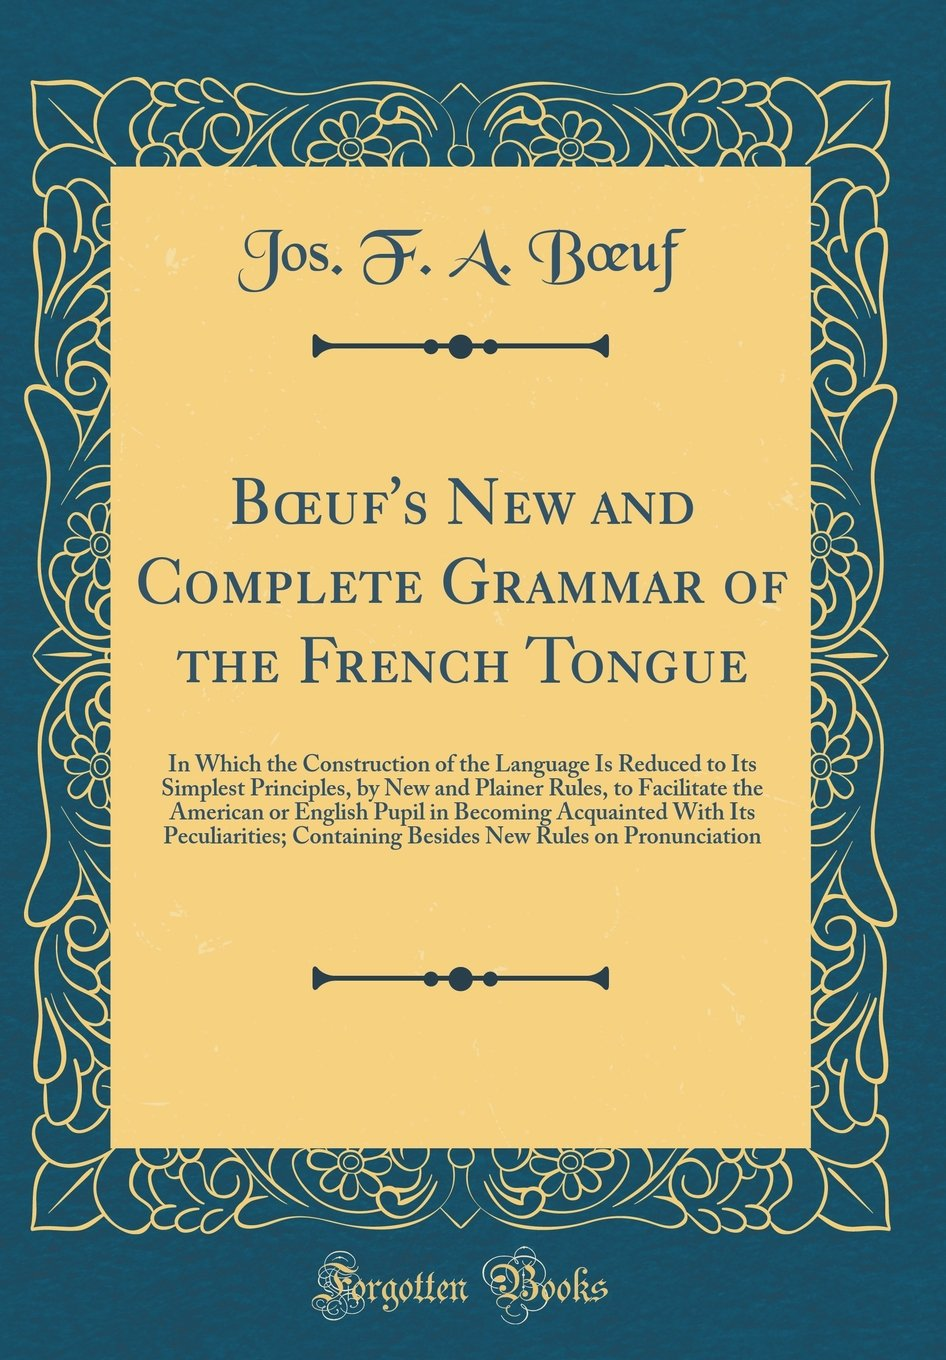 Download Boeuf's New and Complete Grammar of the French Tongue: In Which the Construction of the Language Is Reduced to Its Simplest Principles, by New and ... Acquainted with Its Peculiarities; Co PDF